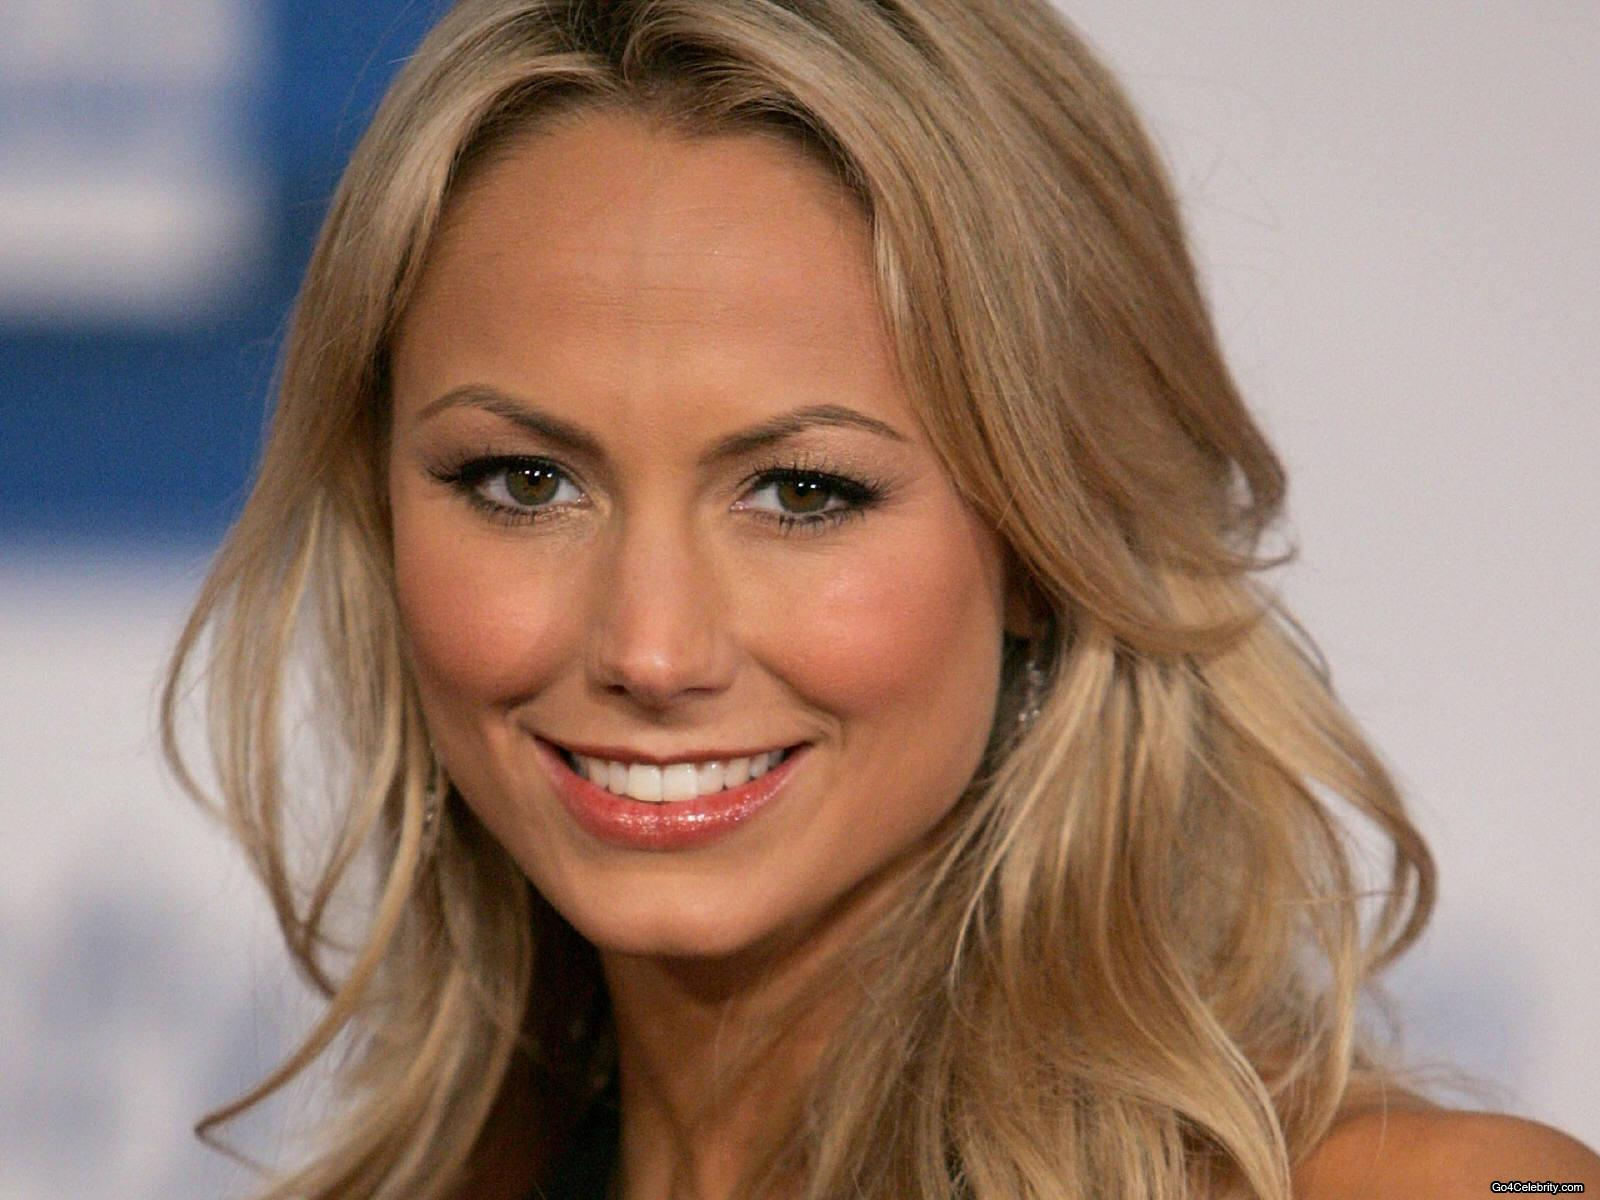 Wwe Girl Hd Wallpaper Stacy Keibler Family Husband Name Age Weight Height